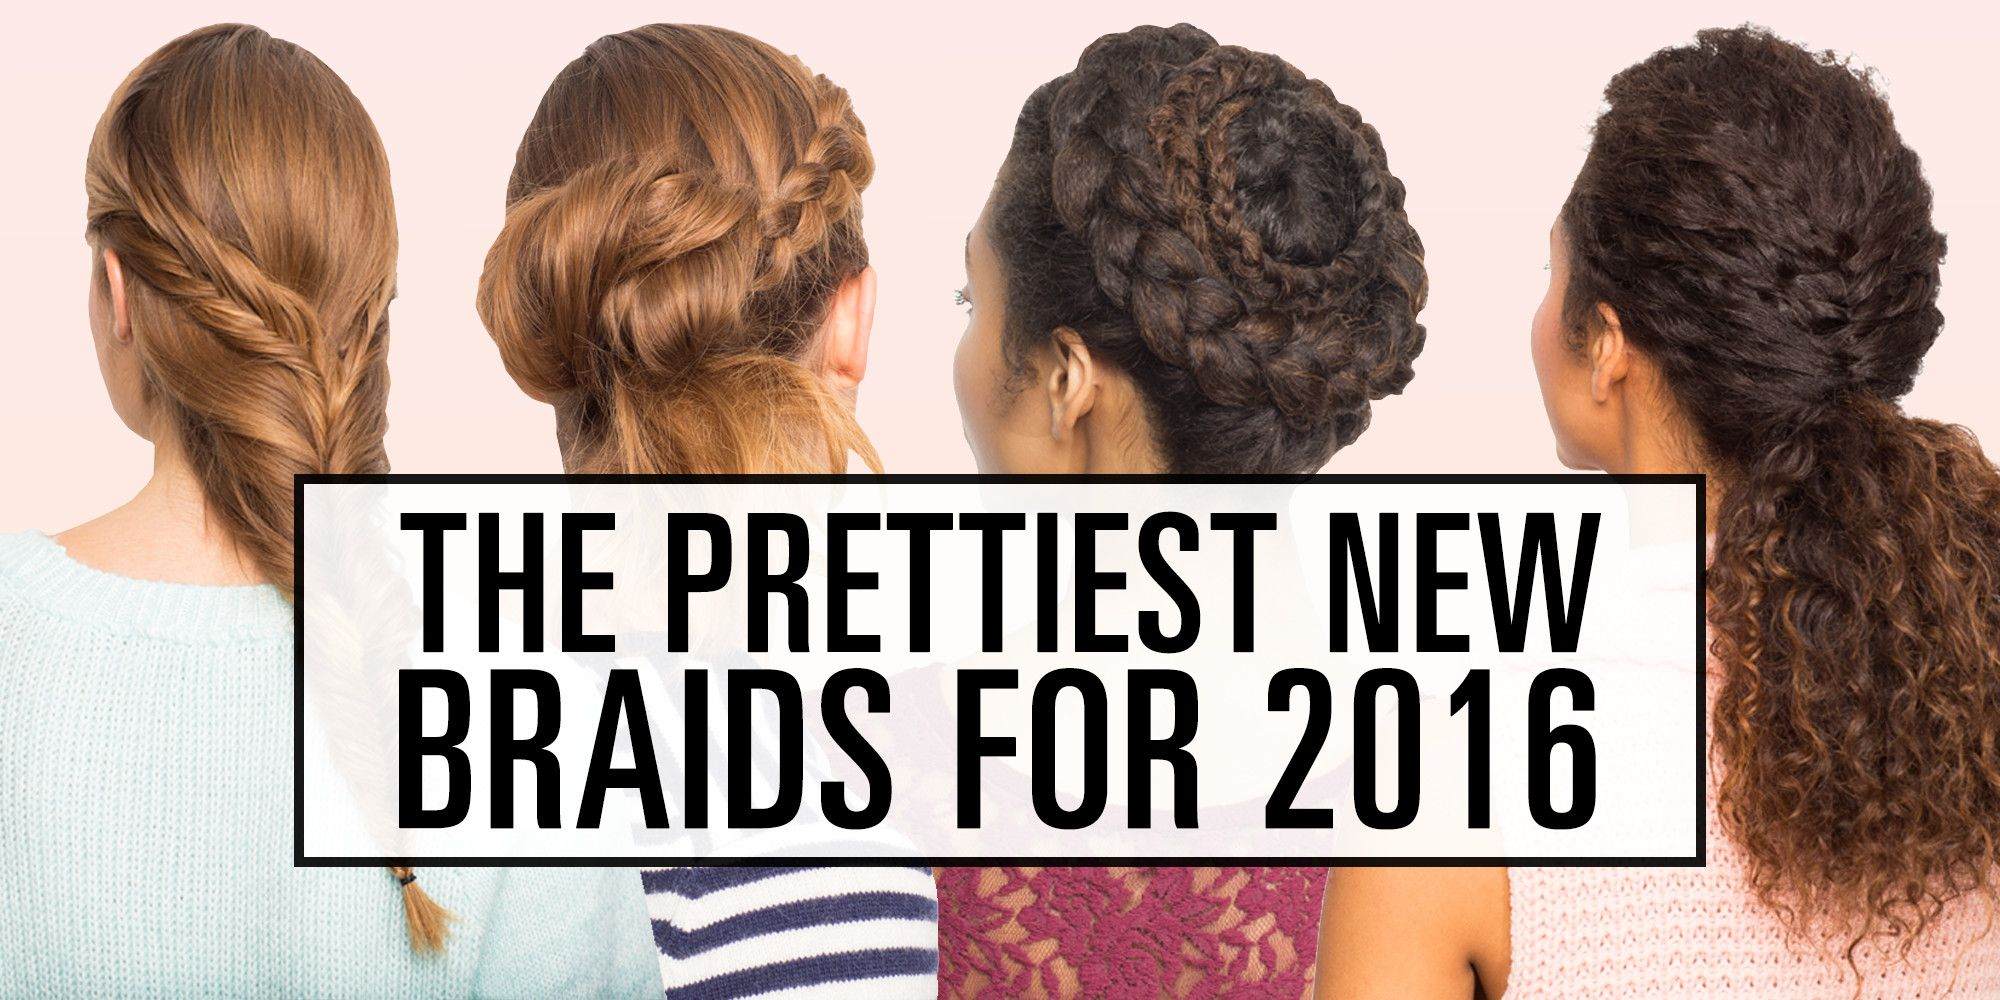 25 Braided Hairstyles 2017 - Cute Braids We Love